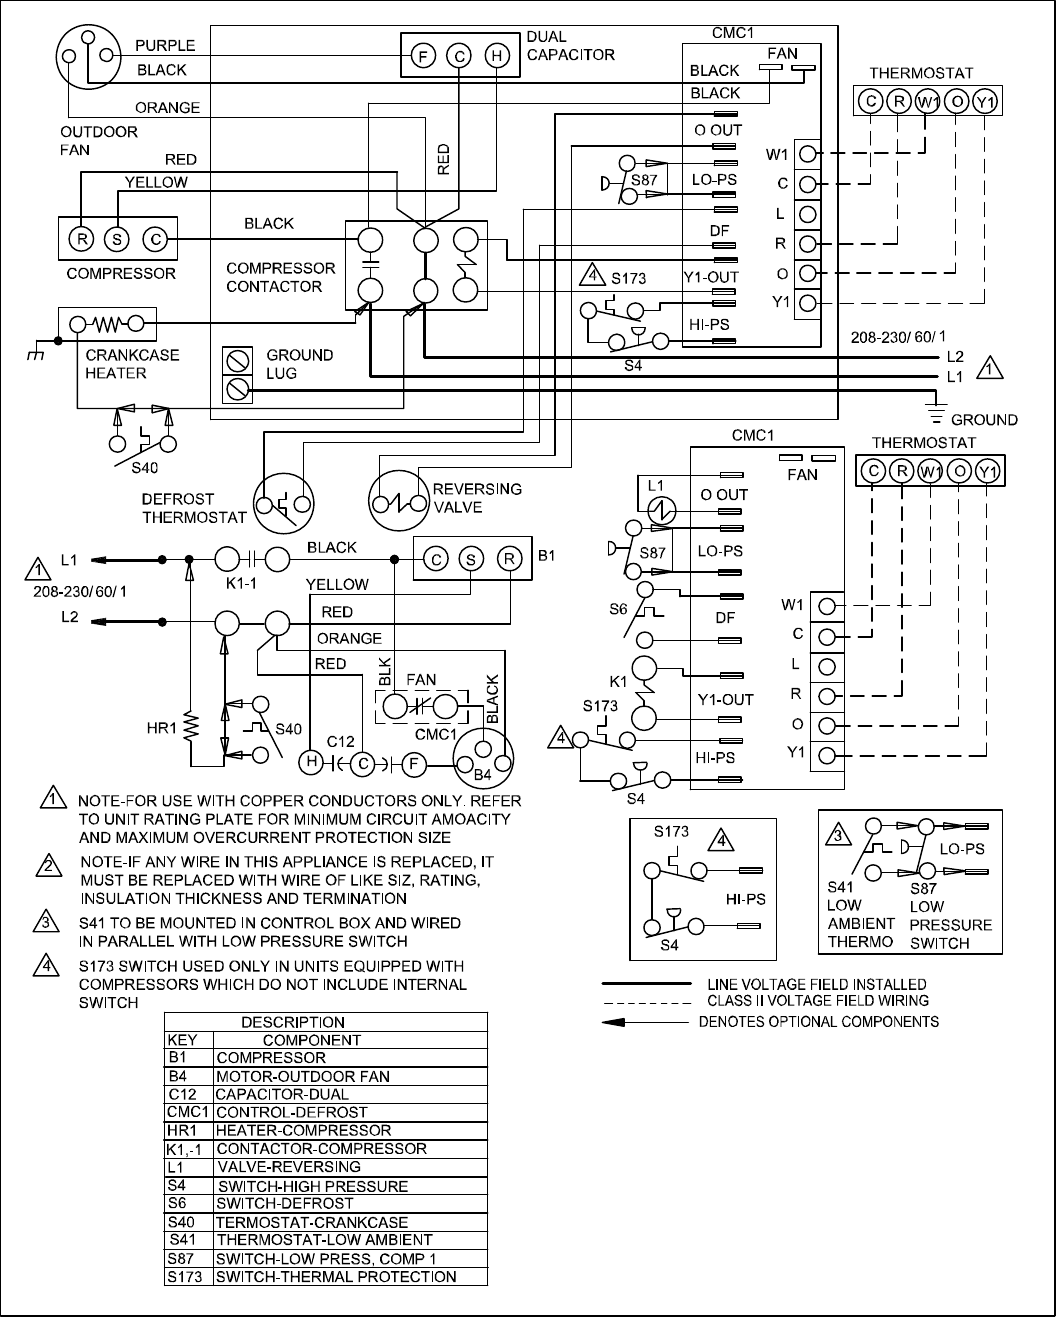 Honeywell Limit Switch Wire Diagram moreover TM 5 4210 230 14P 1 278 furthermore Switch Wiring Diagram Australia moreover Blower Door Interlock Switch also HVAC Clearance Distances. on lennox wiring diagram pdf